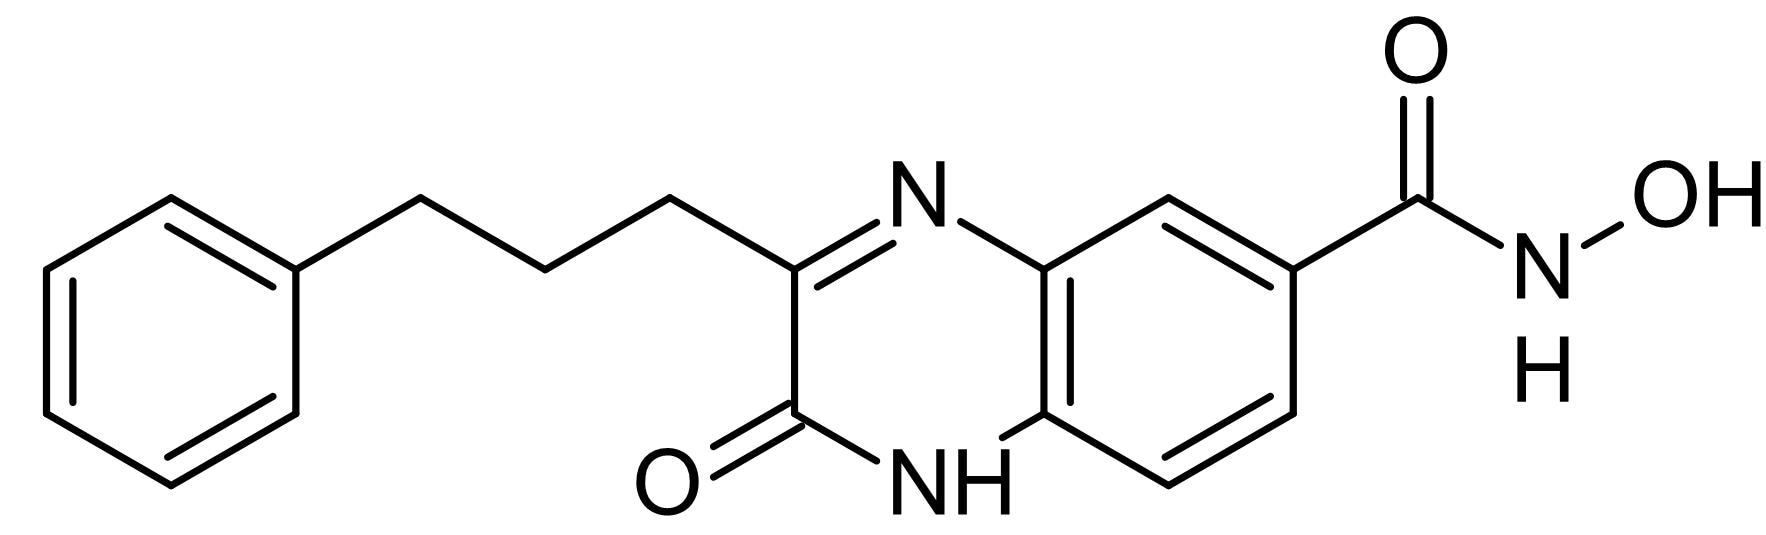 Chemical Structure - TCS 2210, Induces neuronal differentiation (ab142083)